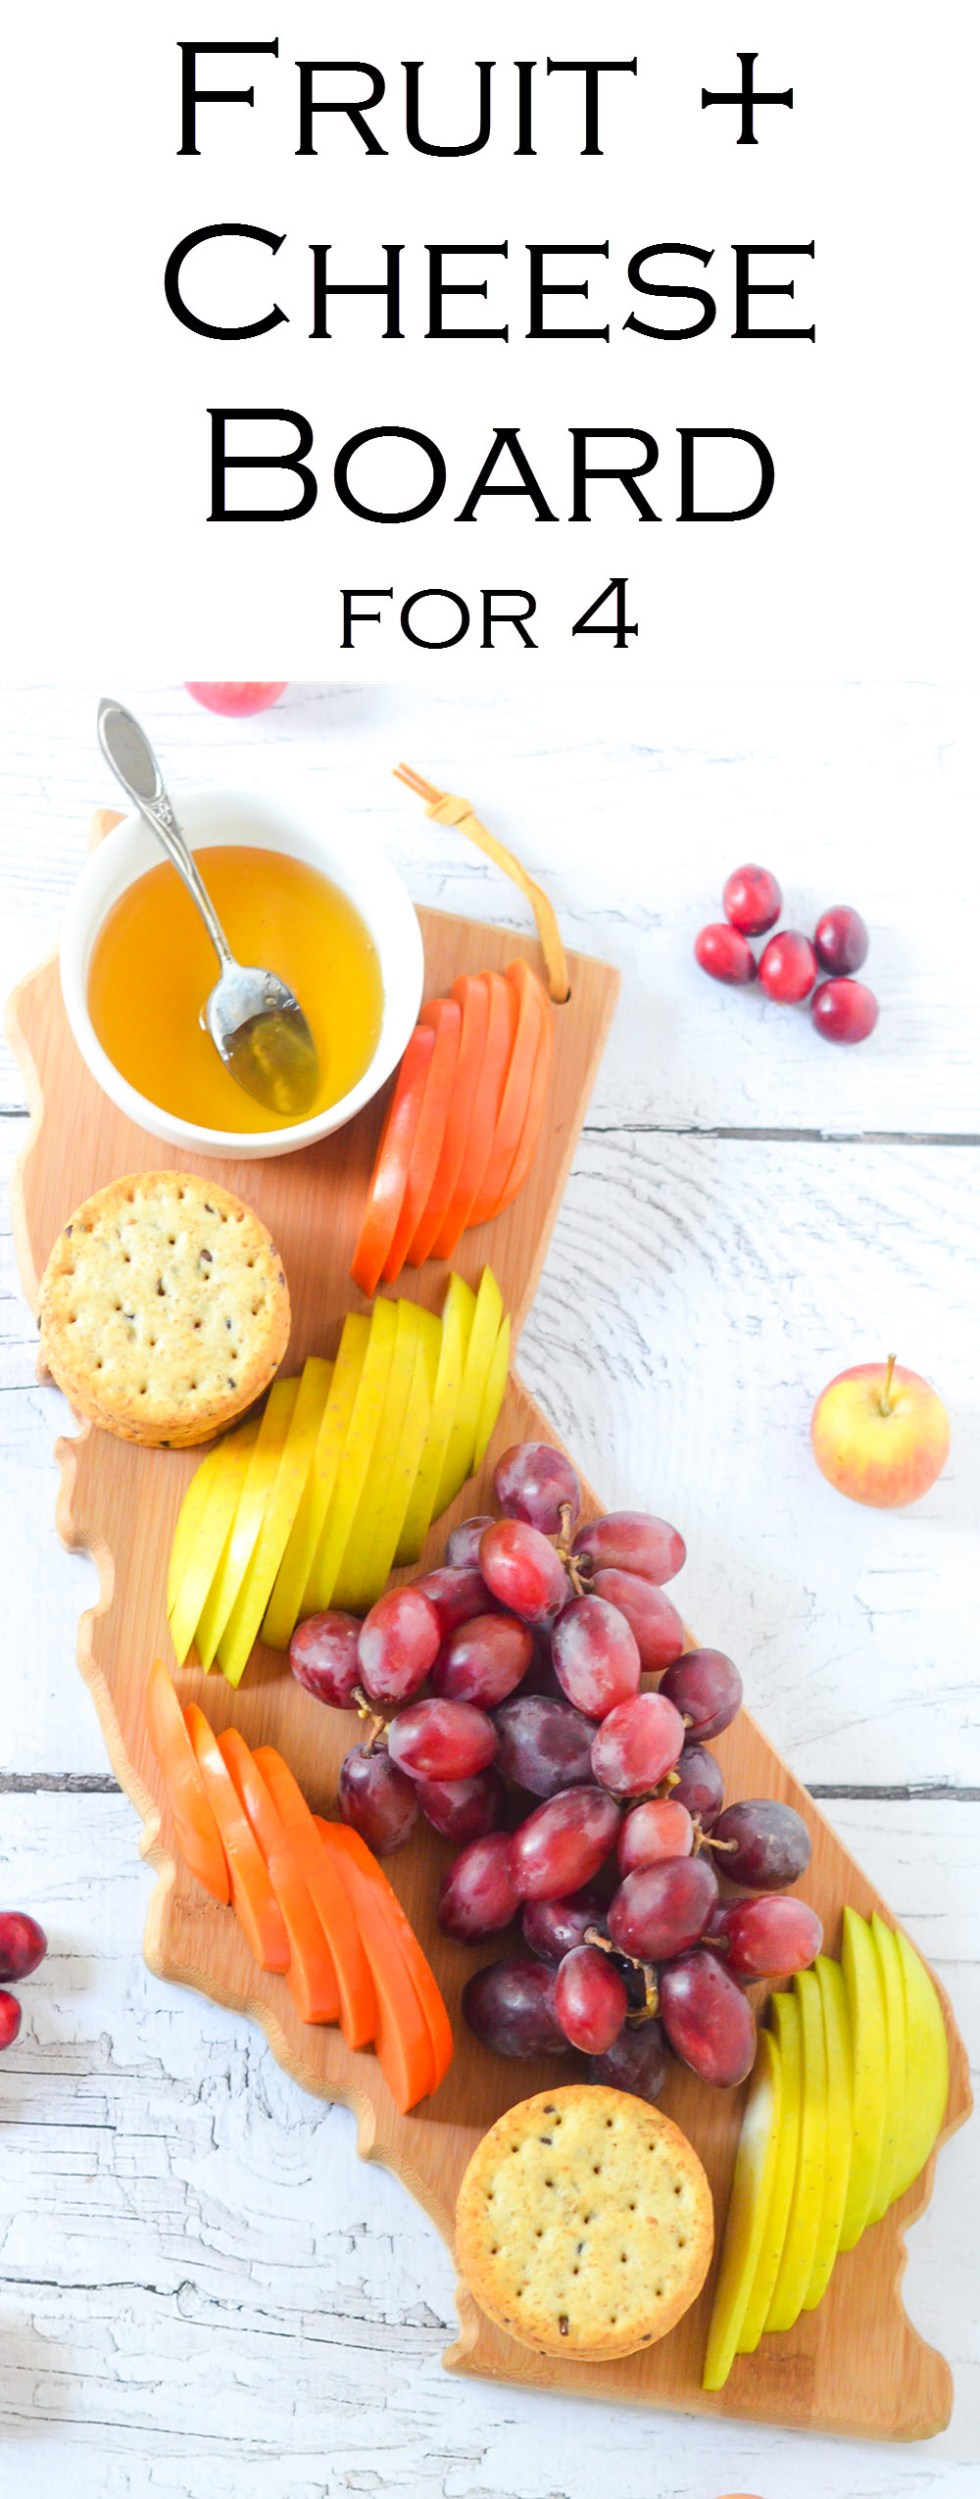 Fresh Fruit Appetizer Board for 4 People. An easy starter for entertaining guests. This board is great to put out for guests when they arrive before food is ready!